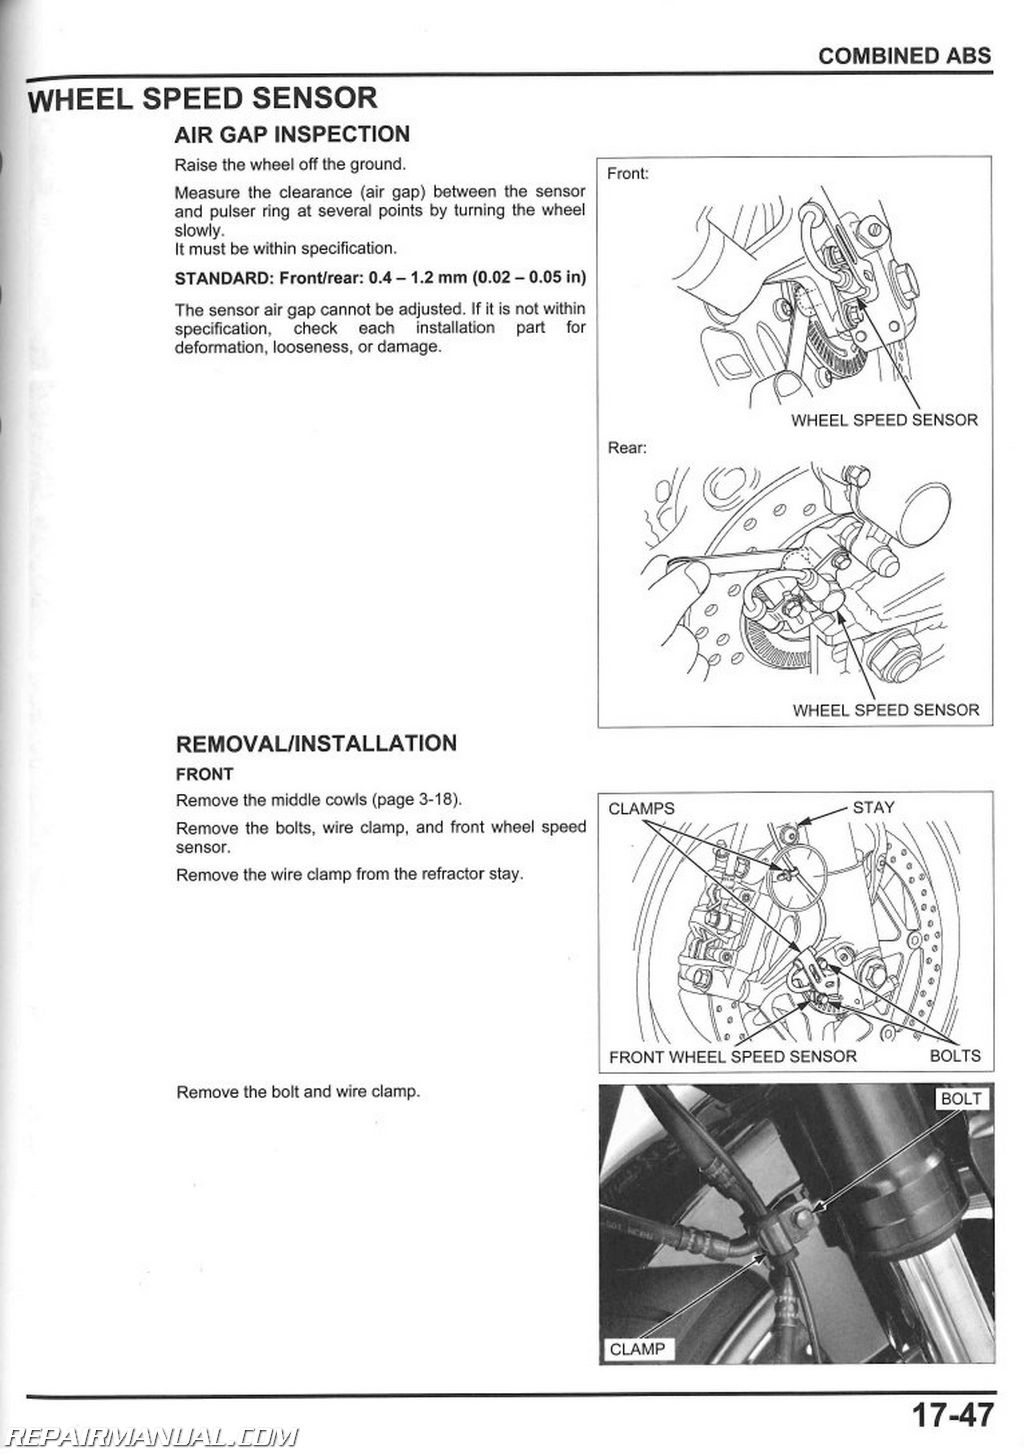 honda crf50 wiring diagram 2008 2016    honda    cbr1000rr motorcycle service manual  2008 2016    honda    cbr1000rr motorcycle service manual